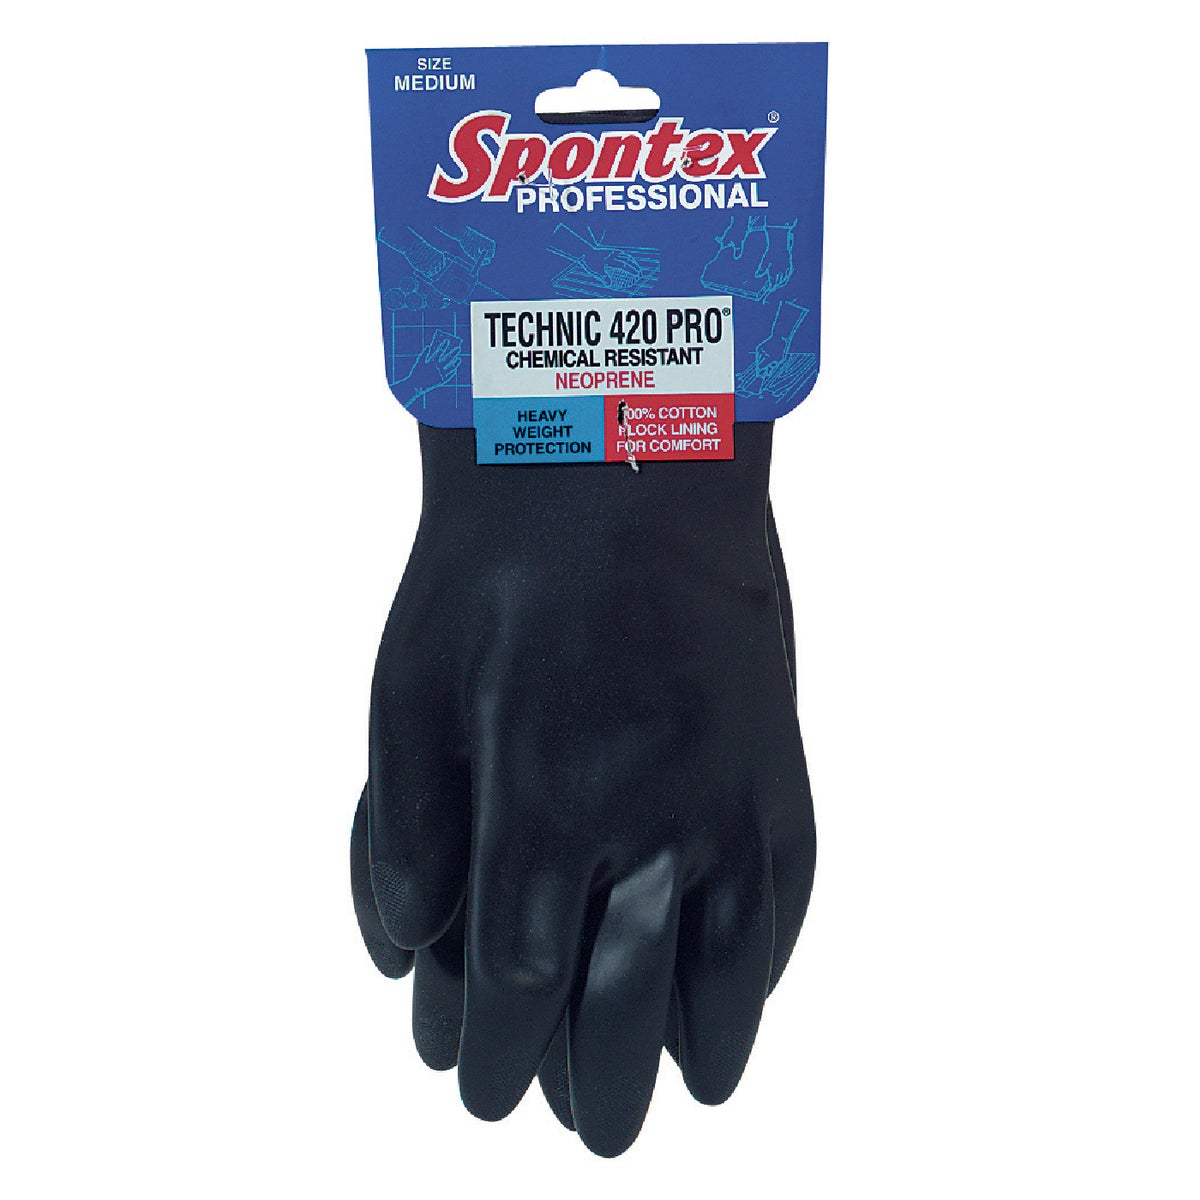 MEDIUM RUBBER GLOVES - 33545 by Lehigh Spontex